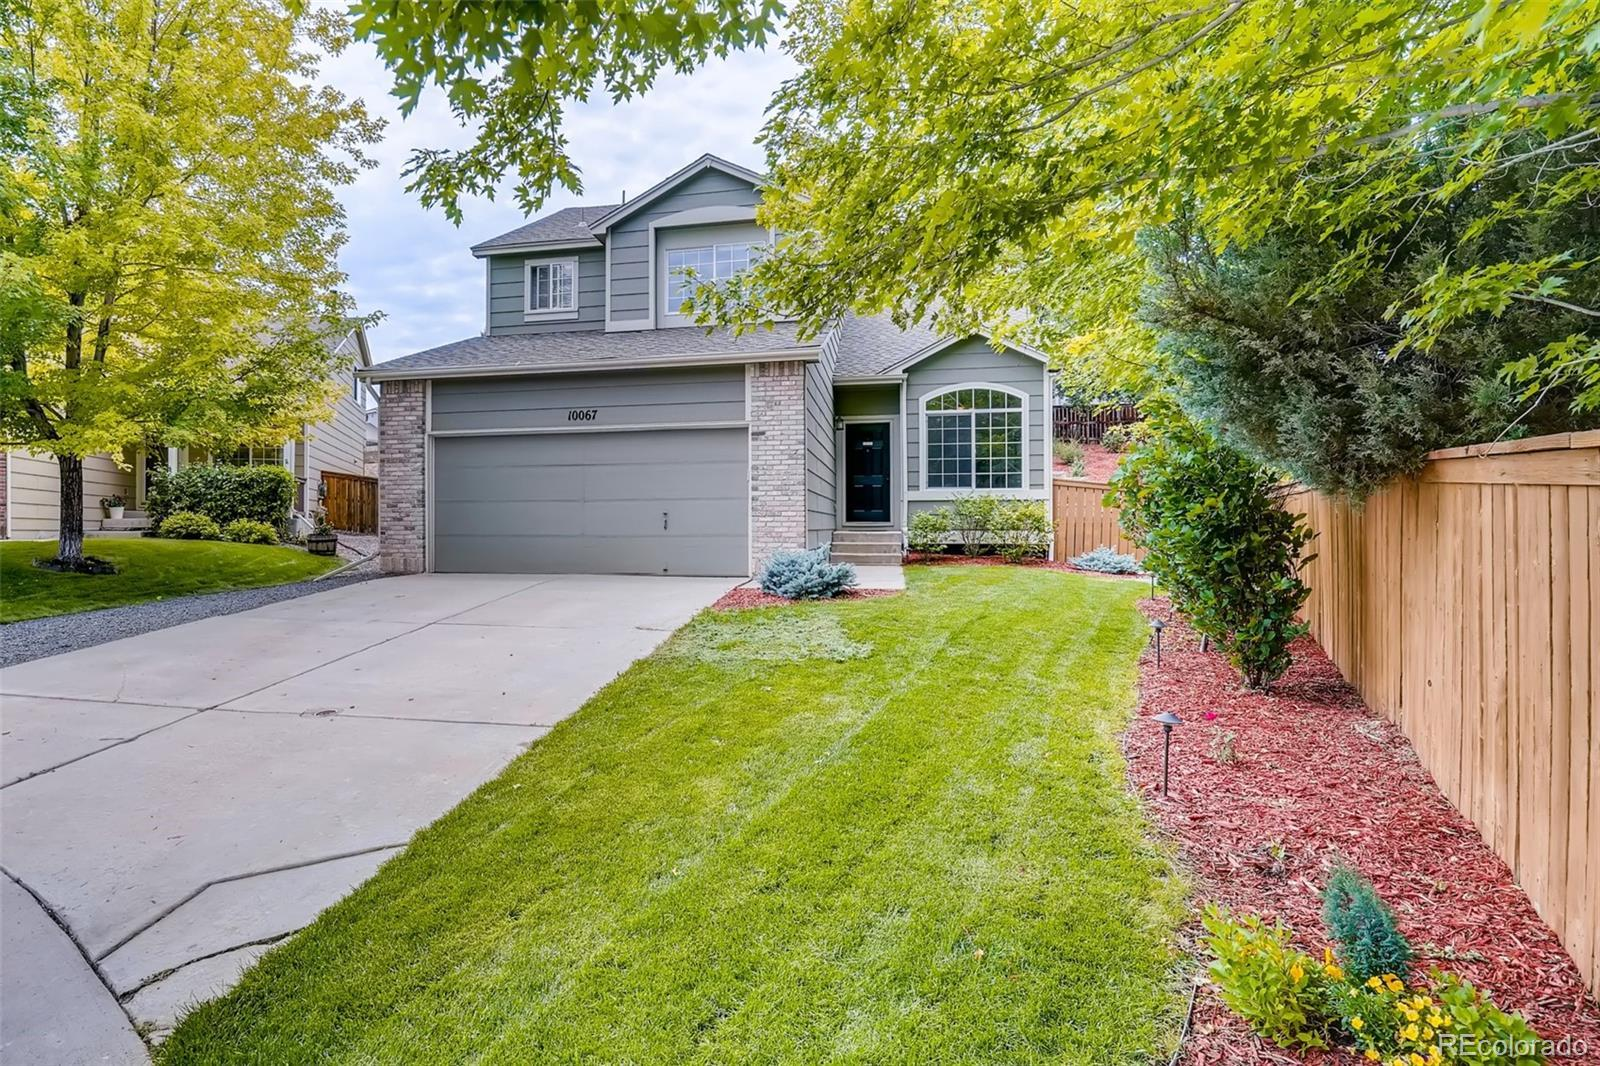 10067 Broome Way, Highlands Ranch, CO 80130 - #: 7299836